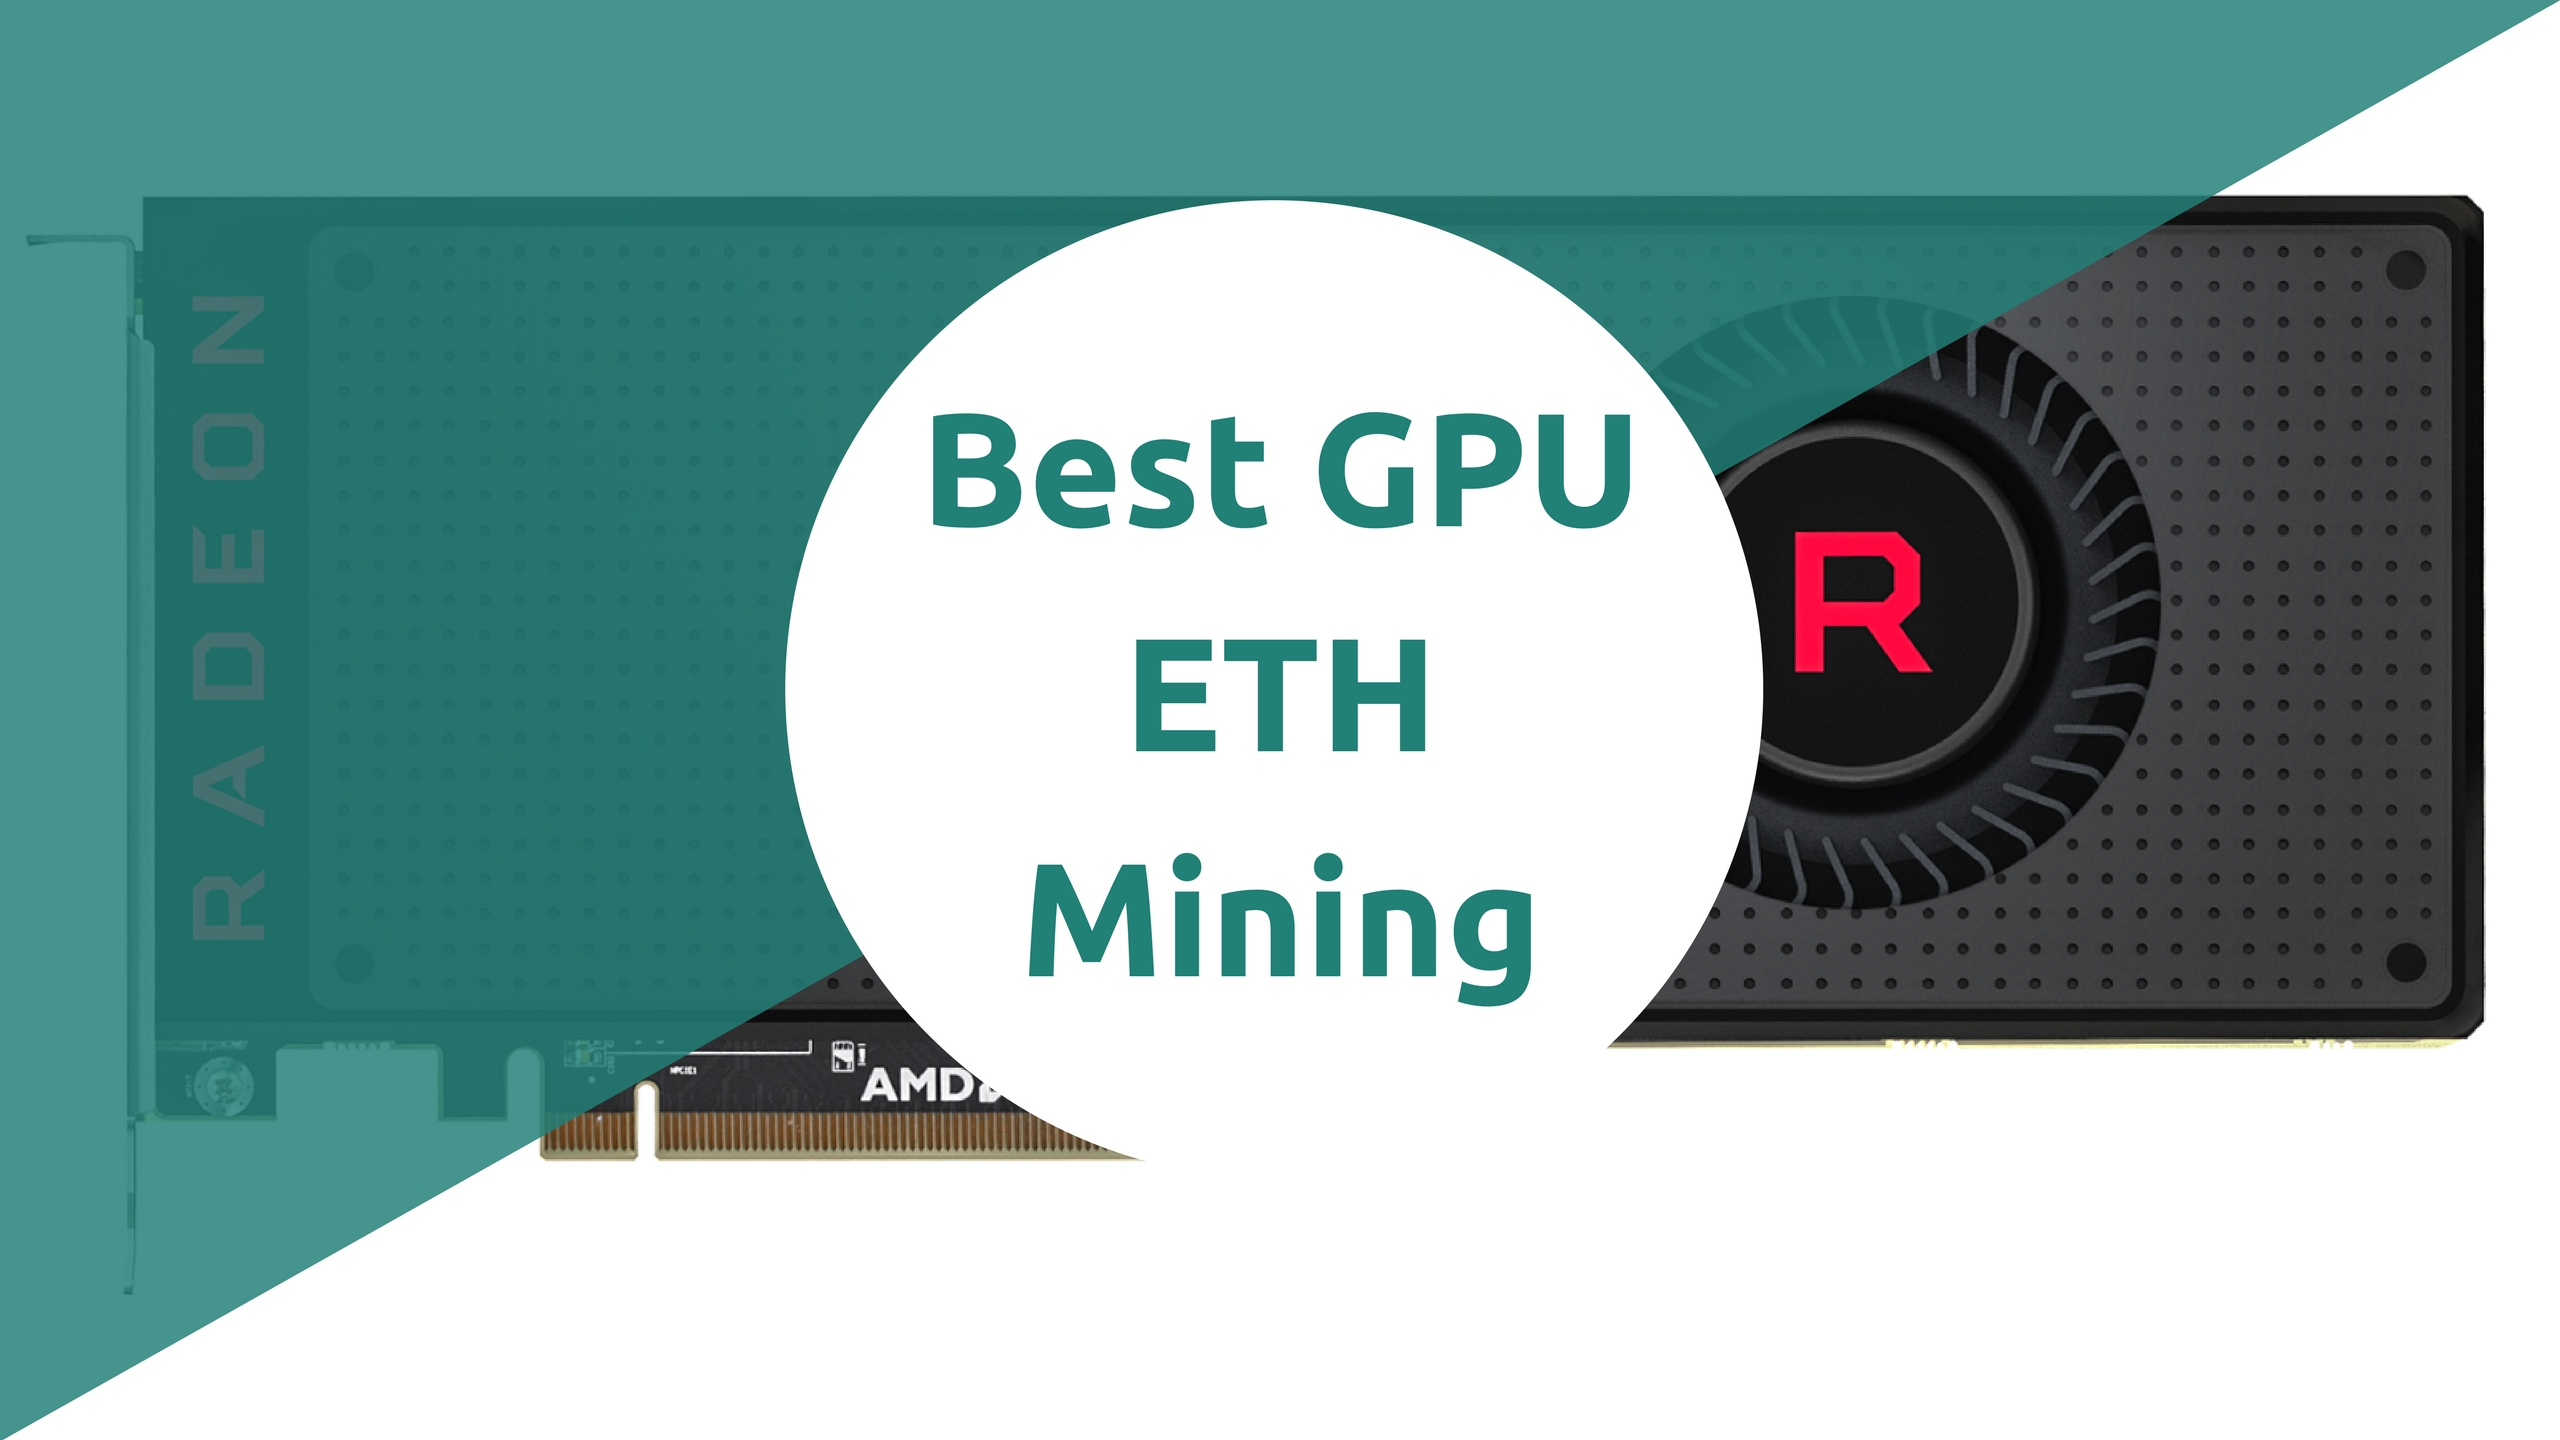 Best Graphics Cards For Mining Ethereum In 2019 - Coin Suggest